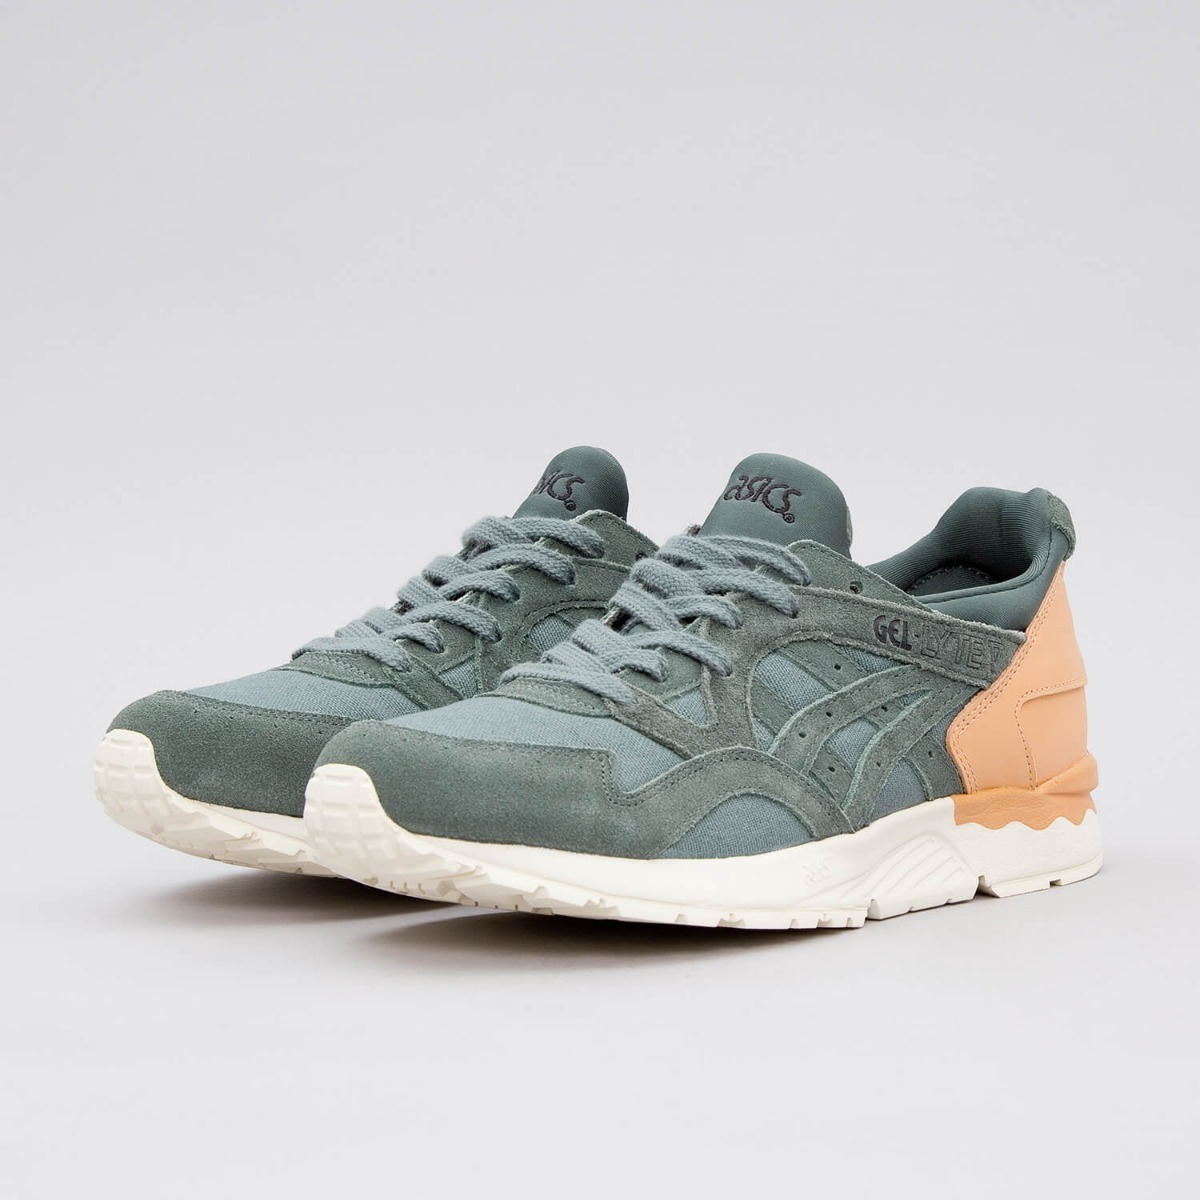 check out cdefa 21994 Asics Gel Lyte V Dark Forest Casual Academia Sneakers Retro